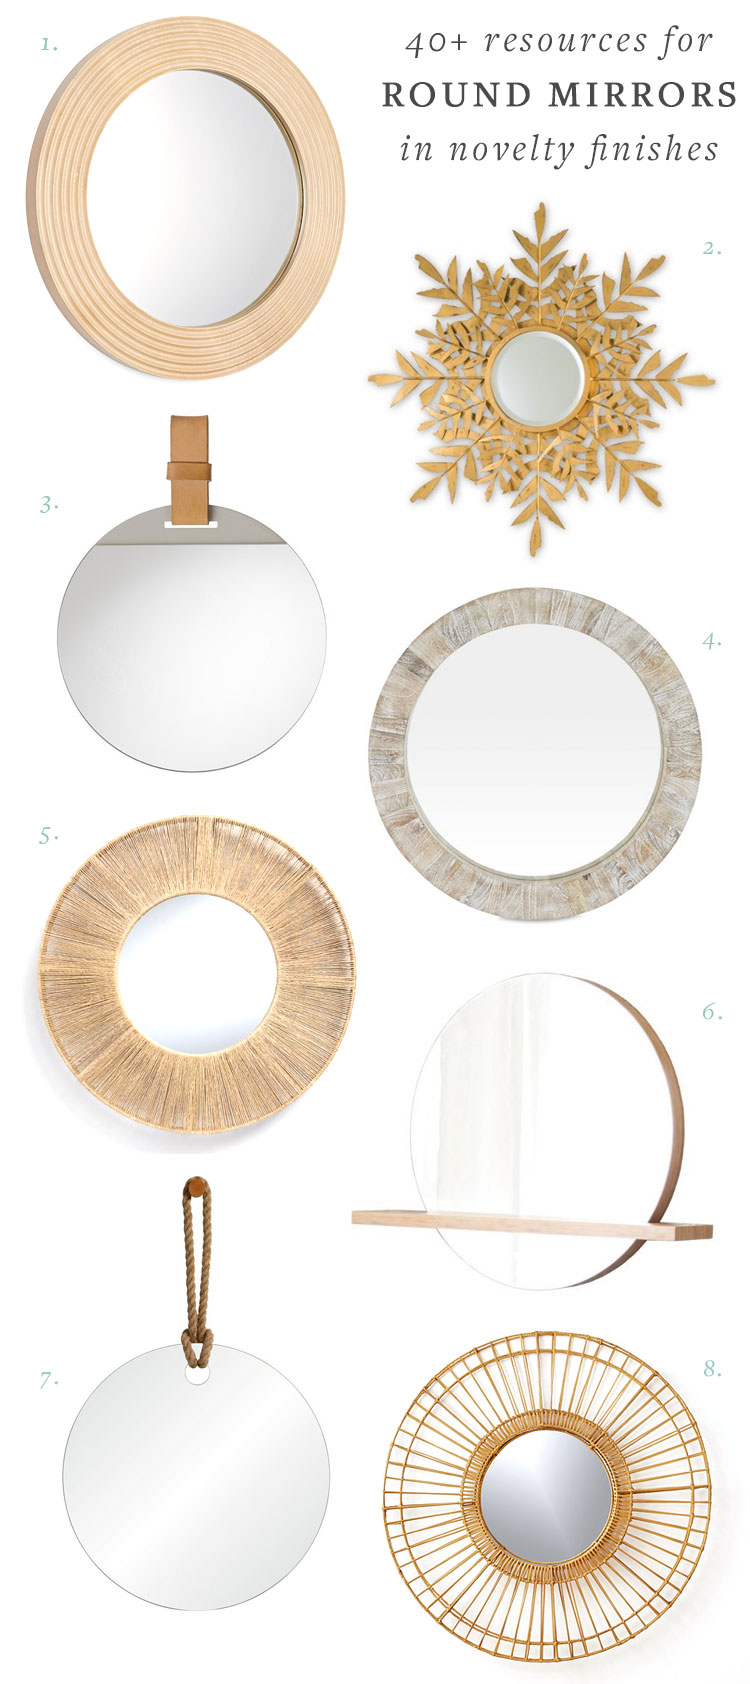 Looking for the perfect round mirror for your bathroom, dining room, living room, or bedroom? I've rounded up 40+ resources for stylish round mirrors! Get the full round up an source list on jojotastic.com